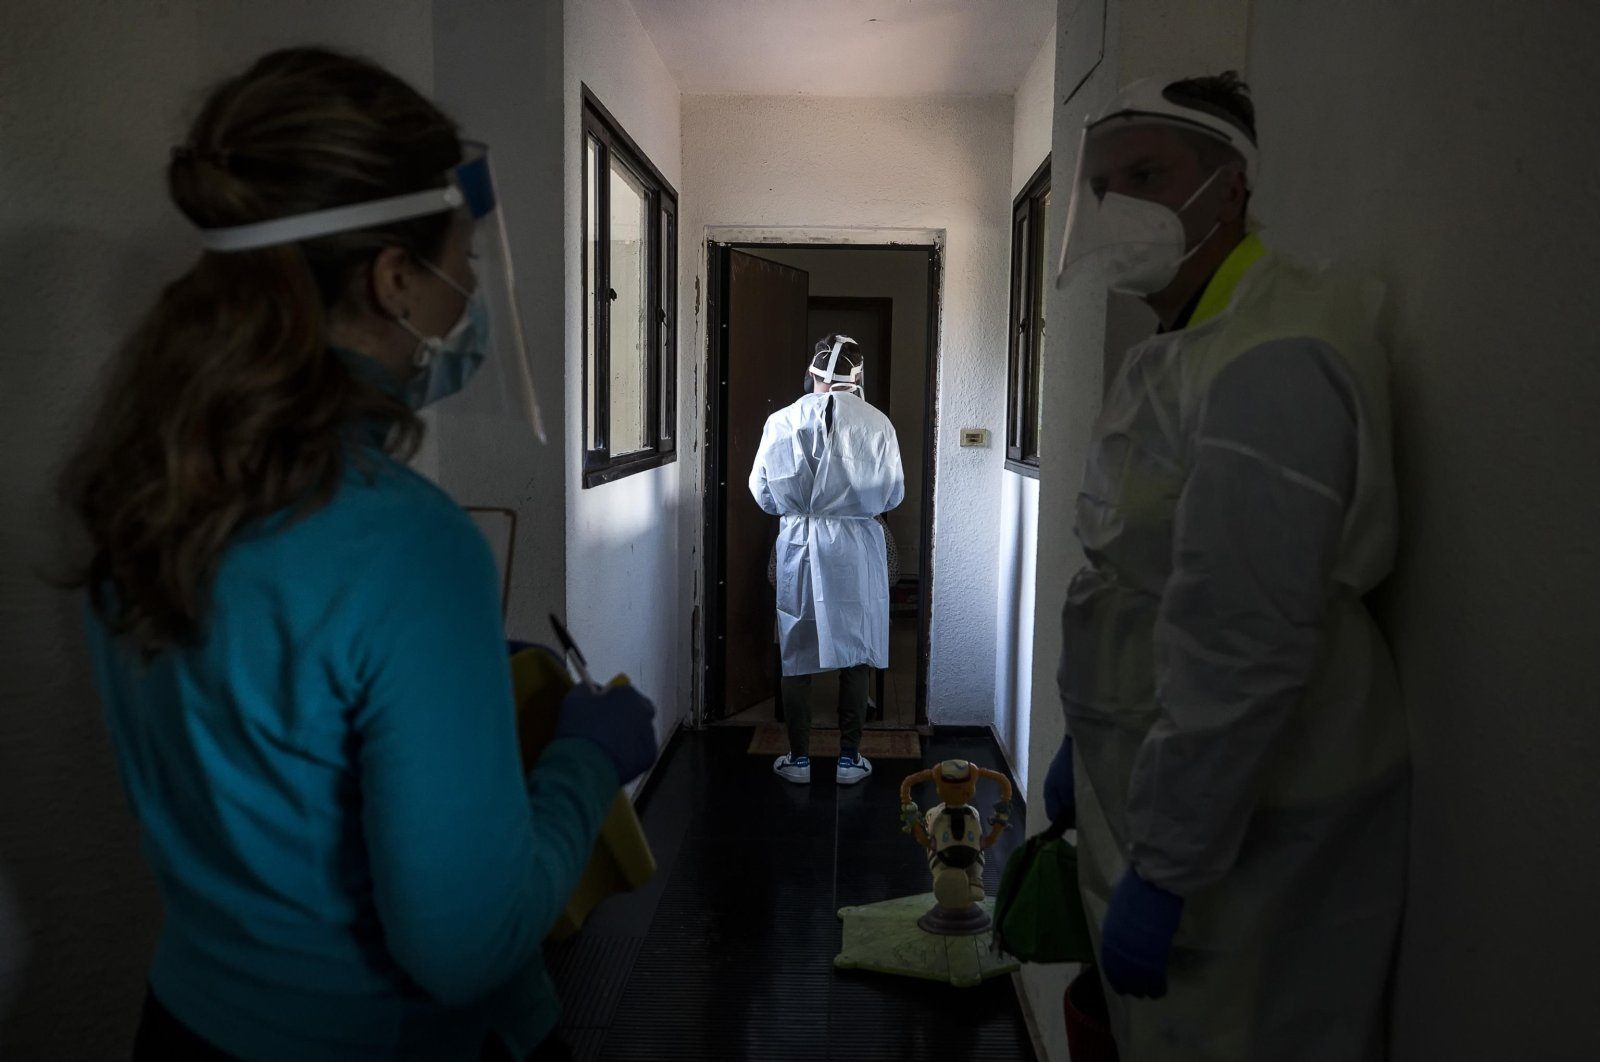 Doctors and nurses of the Special Continuity of Regional Assistance Unit (USCA) in collaboration with ARES 118 perform assistance and COVID-19 testing at home during the coronavirus pandemic emergency in Rome, Italy, Nov 17, 2020. (EPA Photo)